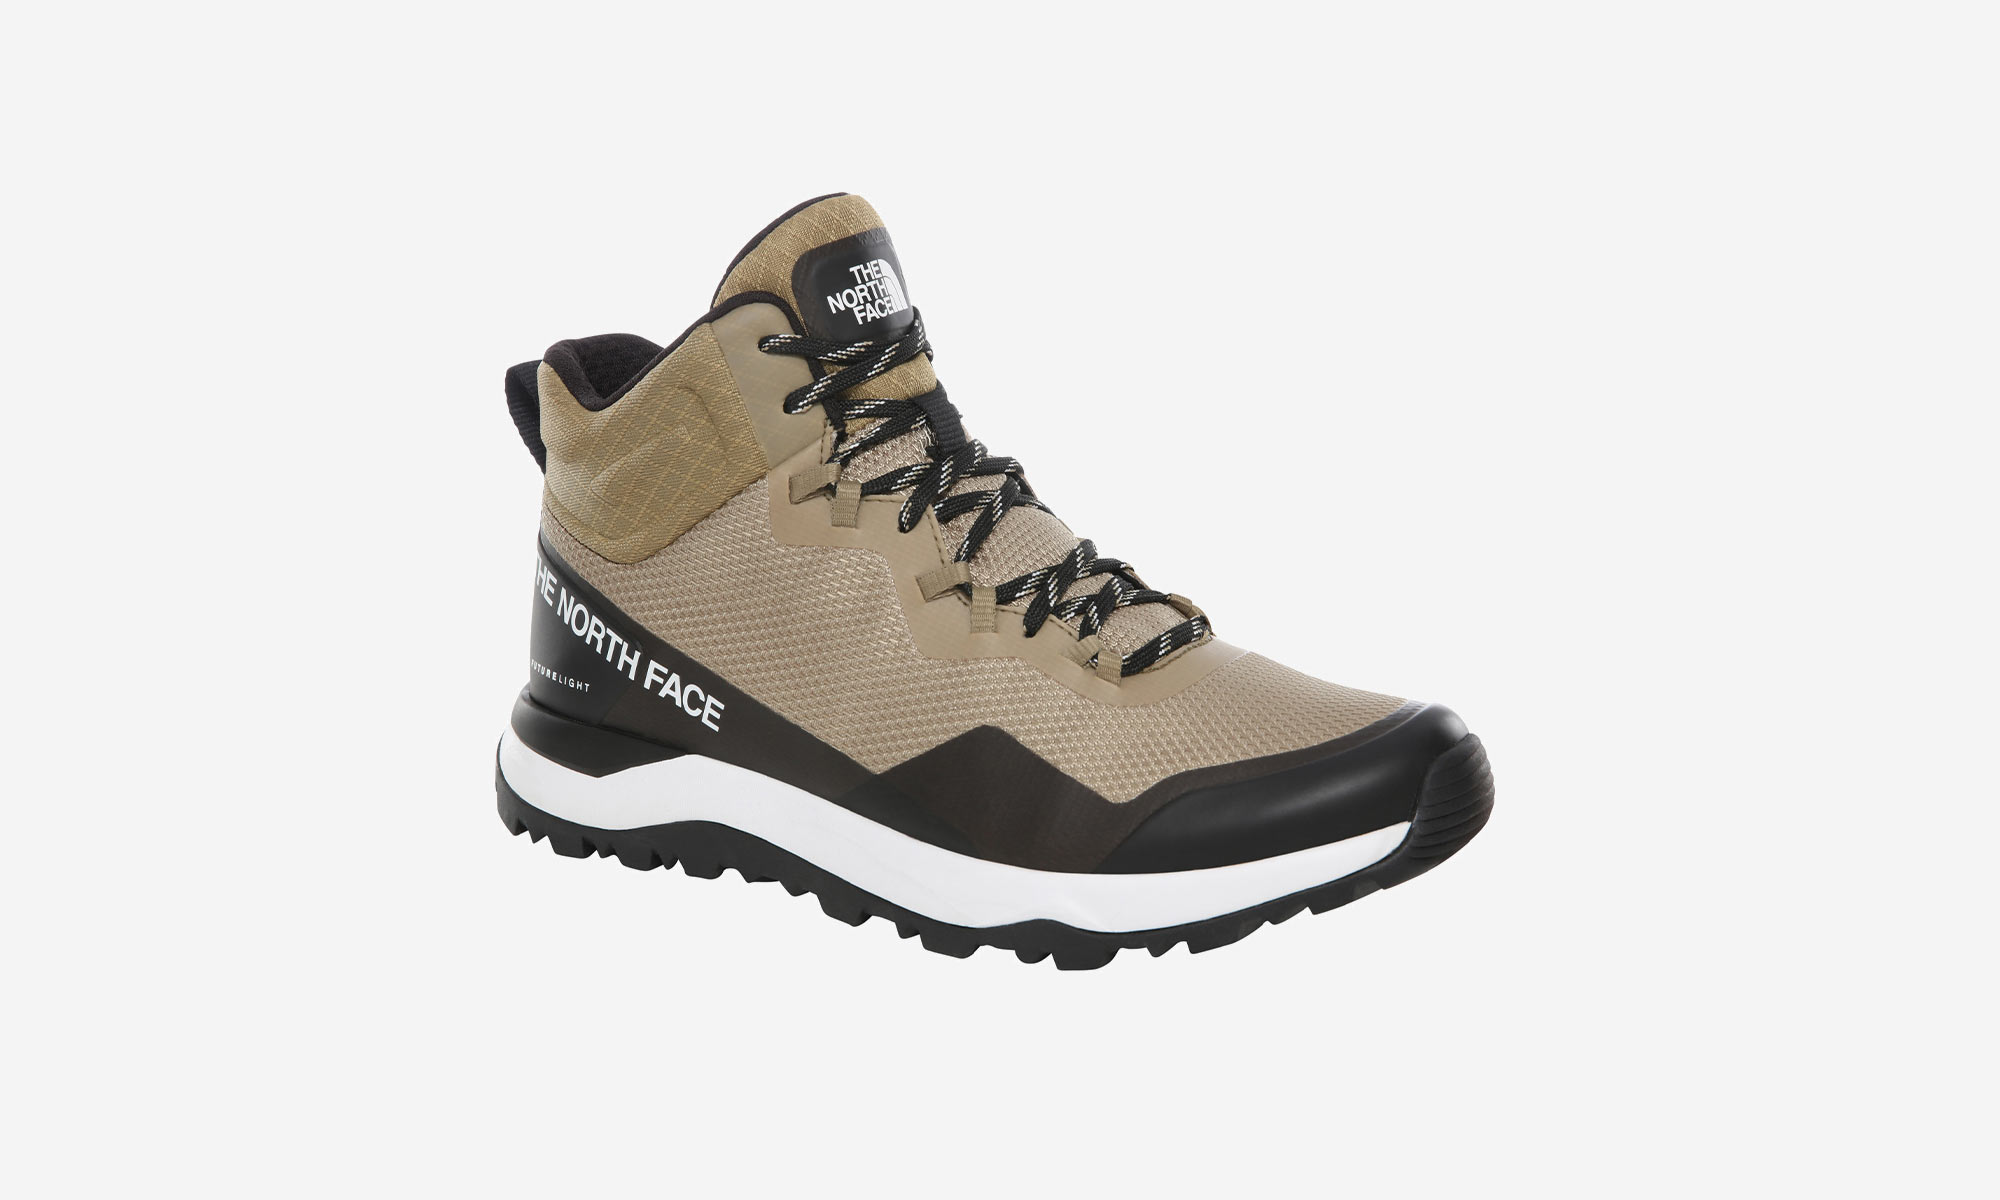 The North Face Activist Mid Futurelight